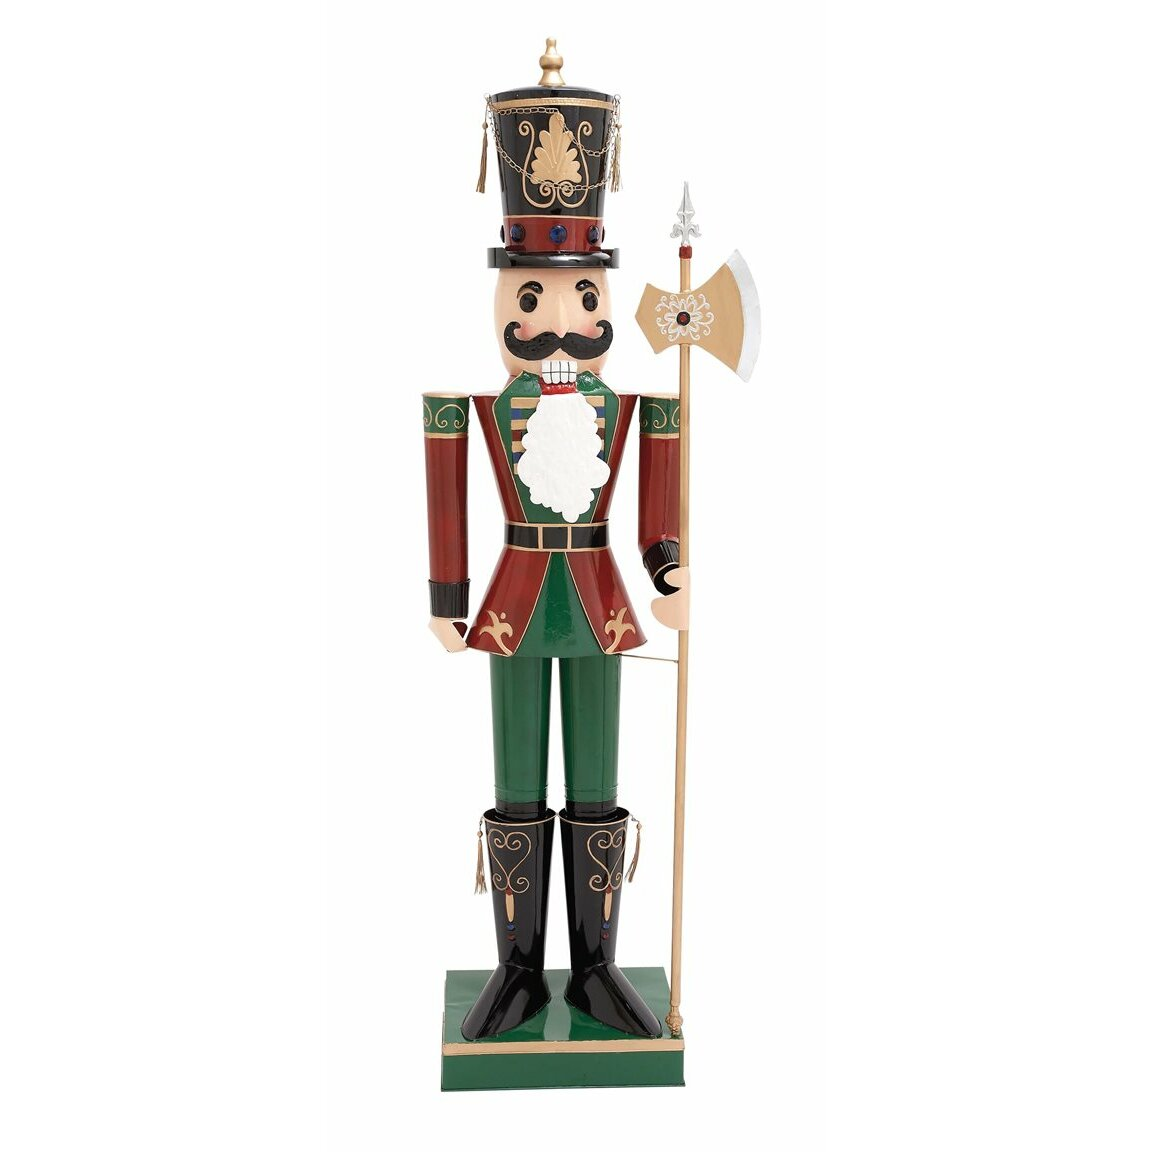 Darby home co metal nutcracker figurine wayfair